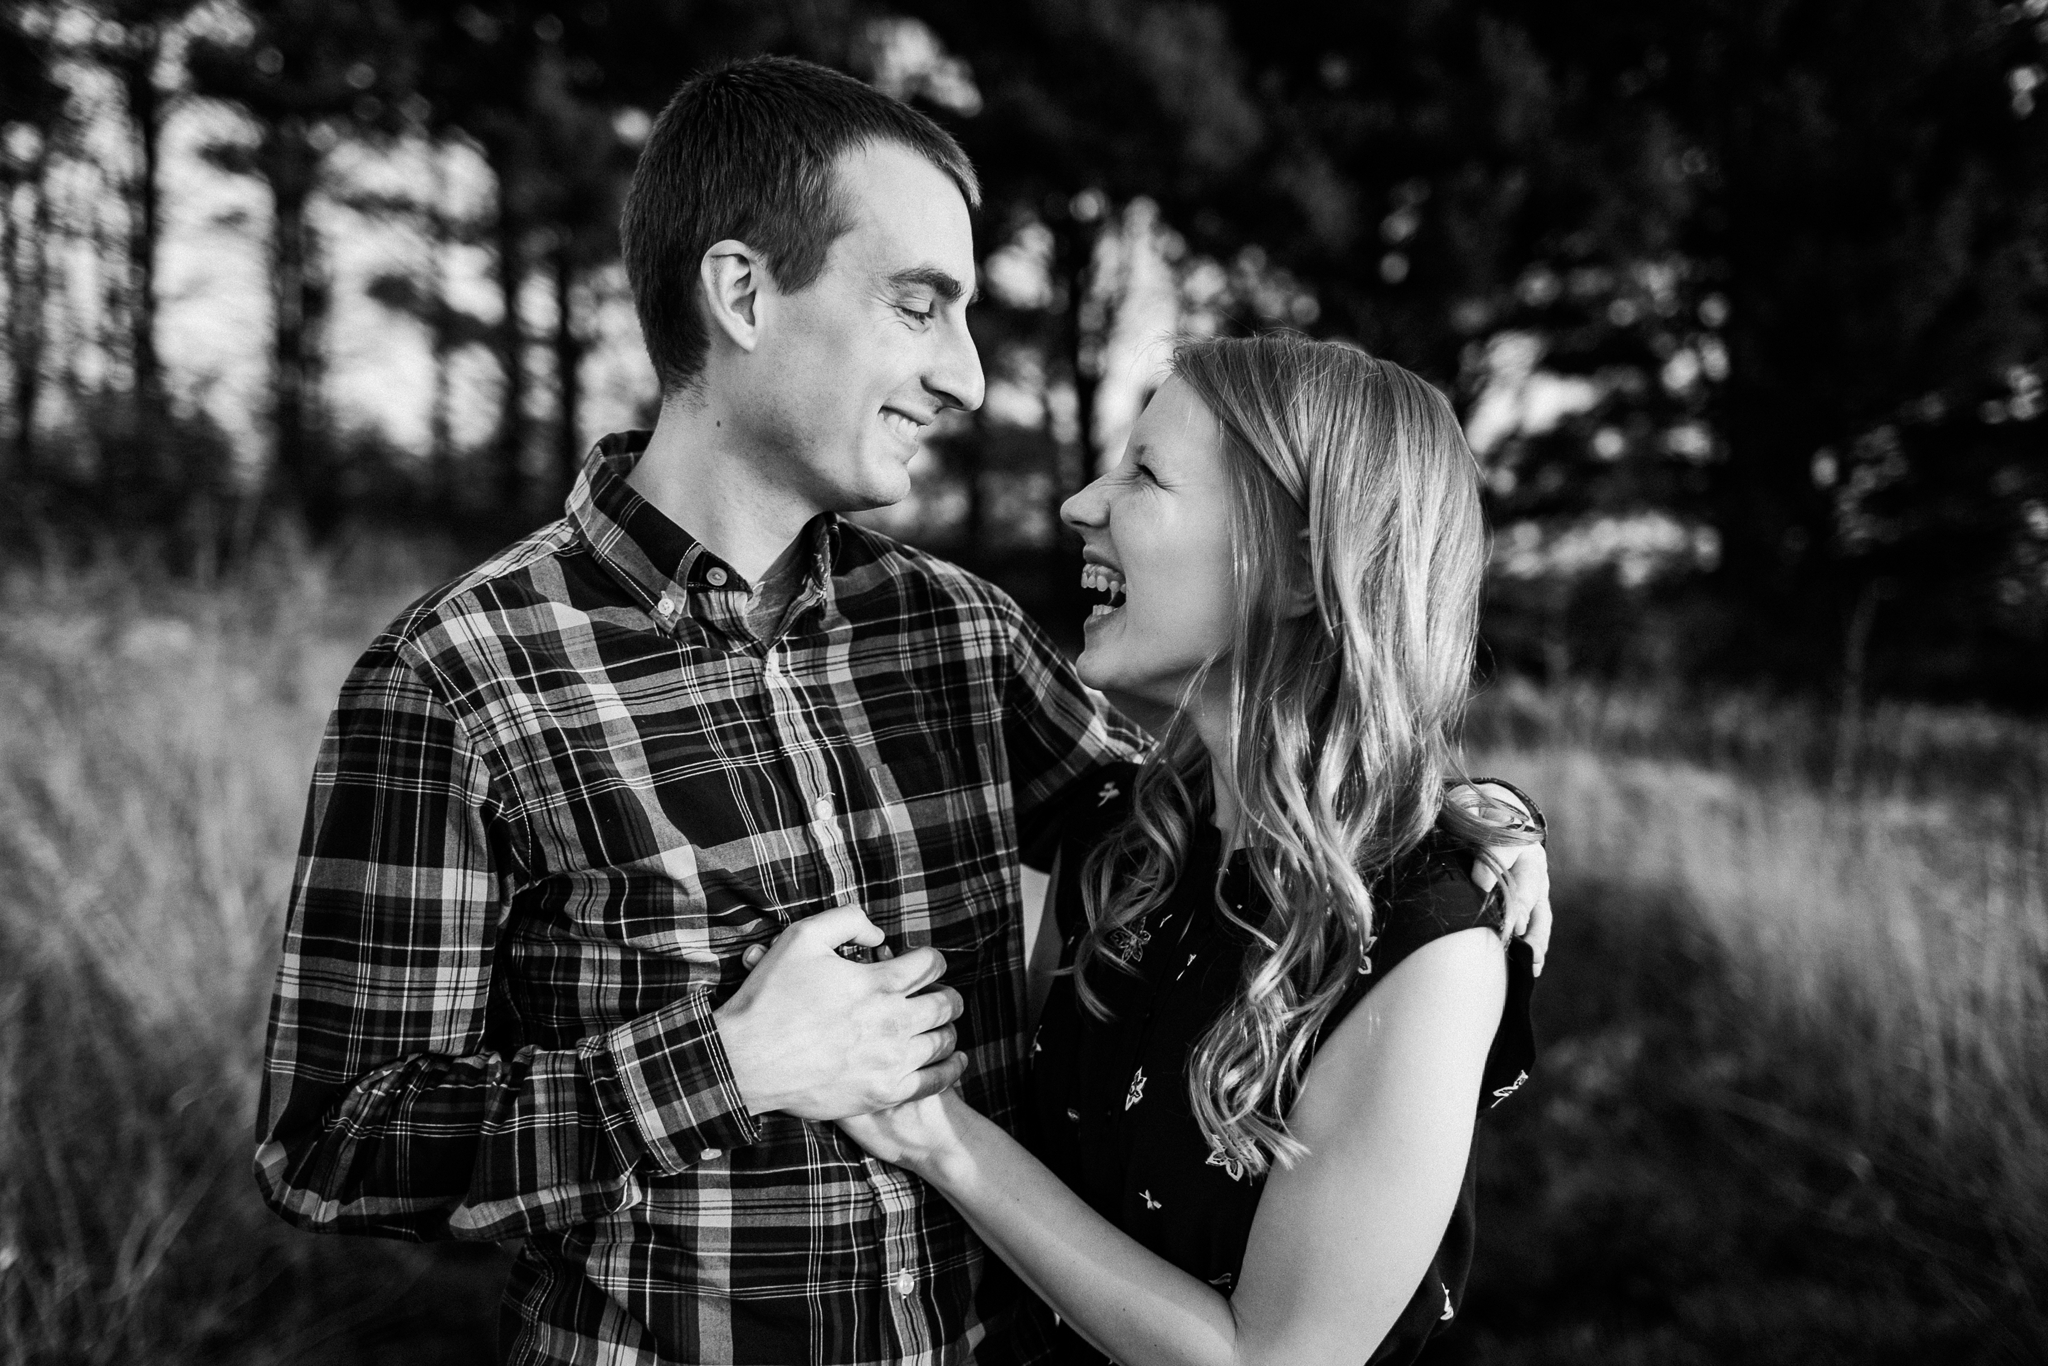 dekalb_IL_chicago_engagement_photographer_0006.jpg